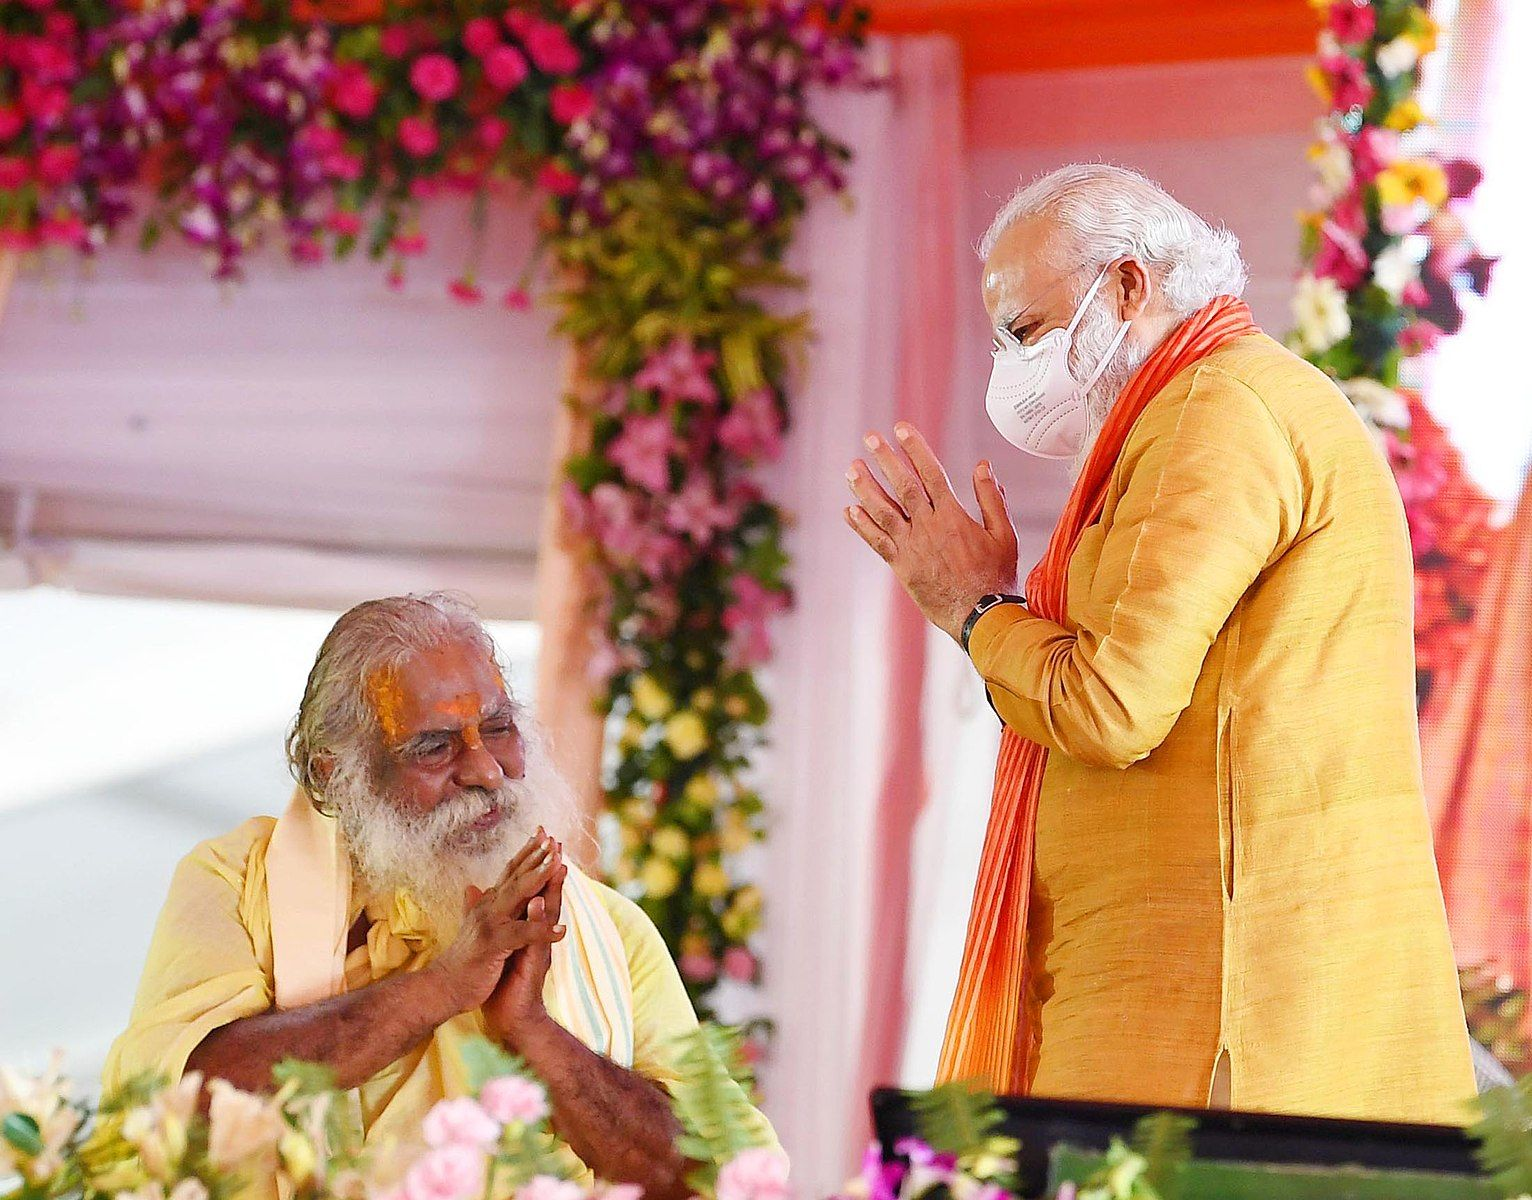 The Prime Minister, Shri Narendra Modi with Mahant Nrityagopal Das at the foundation stone laying ceremony of Shree Ram Janmabhoomi Mandir, in Ayodhya, Uttar Pradesh on August 05, 2020